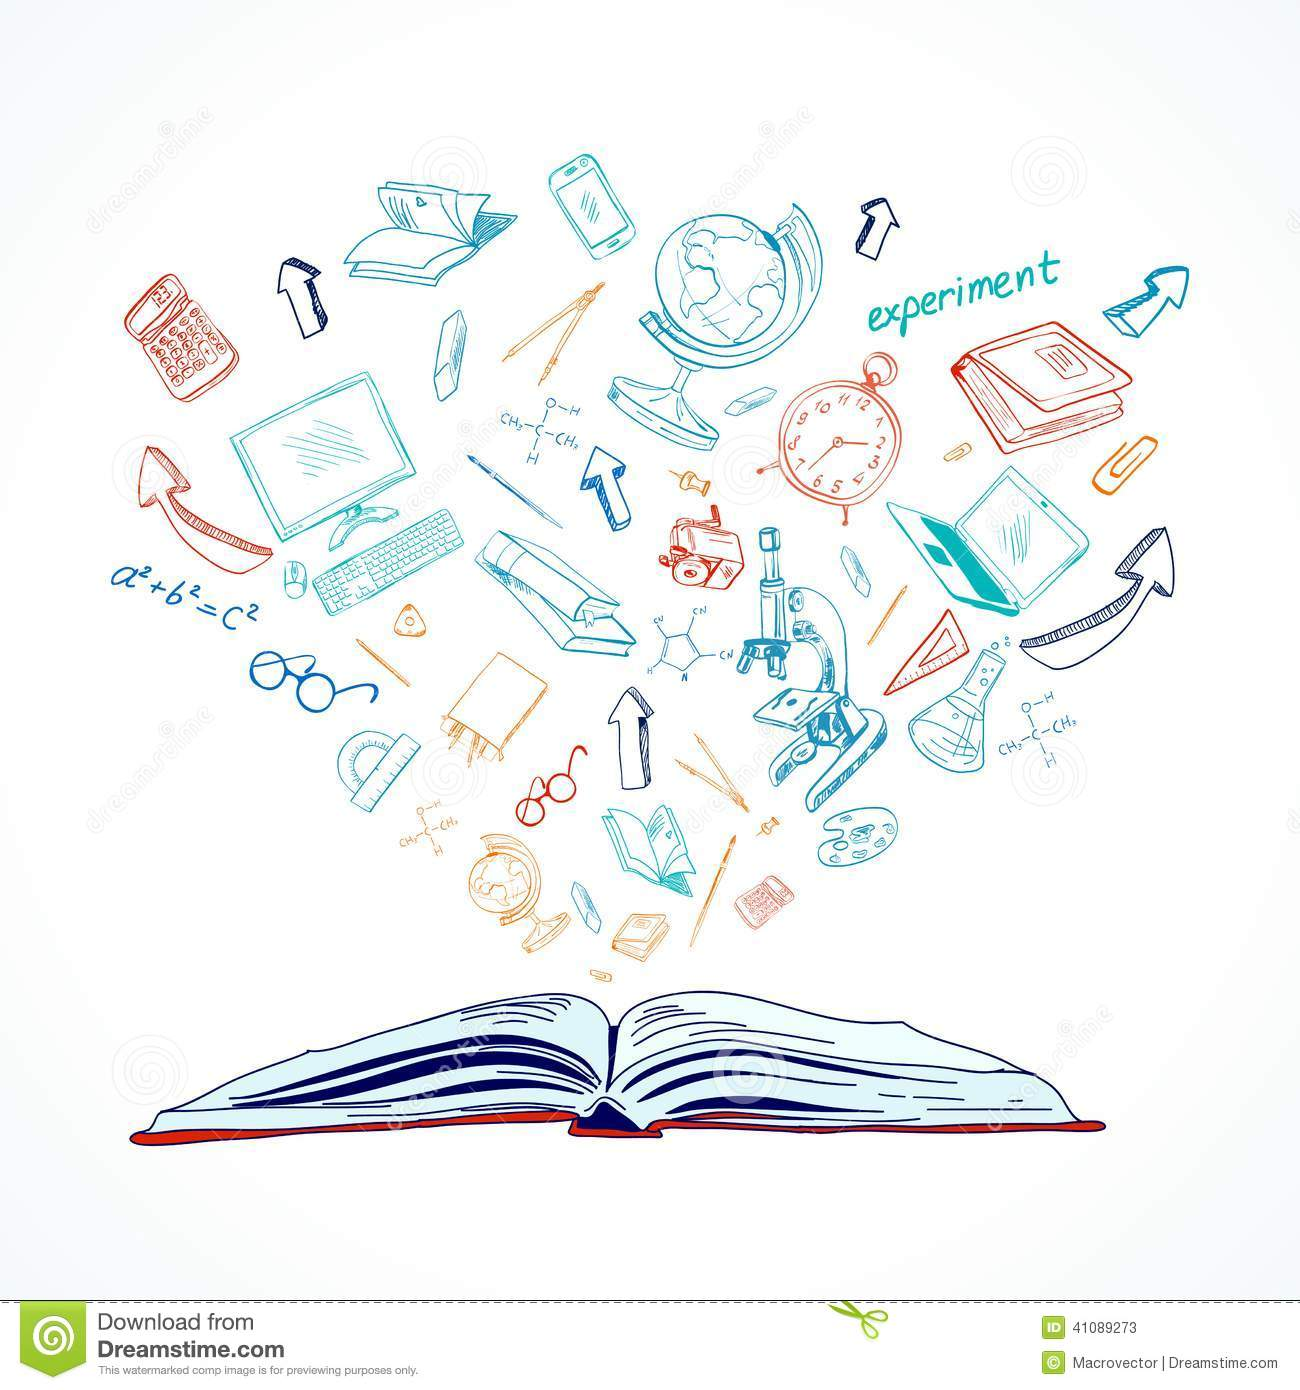 Stock Illustration Open Book Education Concept Doodle School Icons Set Vector Illustration Image41089273 on alarm clock drawing